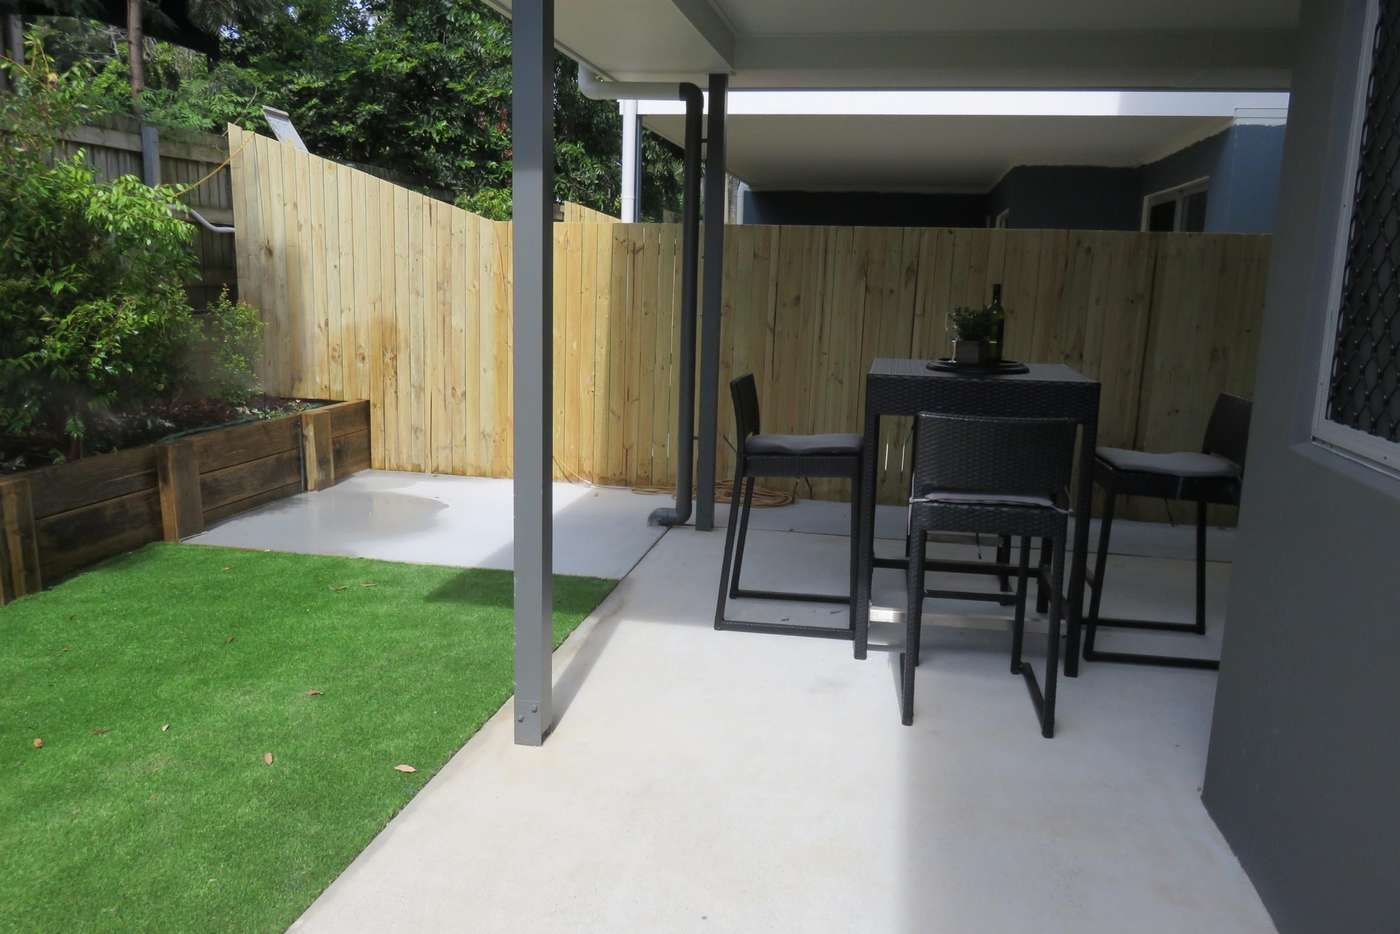 Sixth view of Homely townhouse listing, LN:10067/63 Harlen Rd, Salisbury QLD 4107